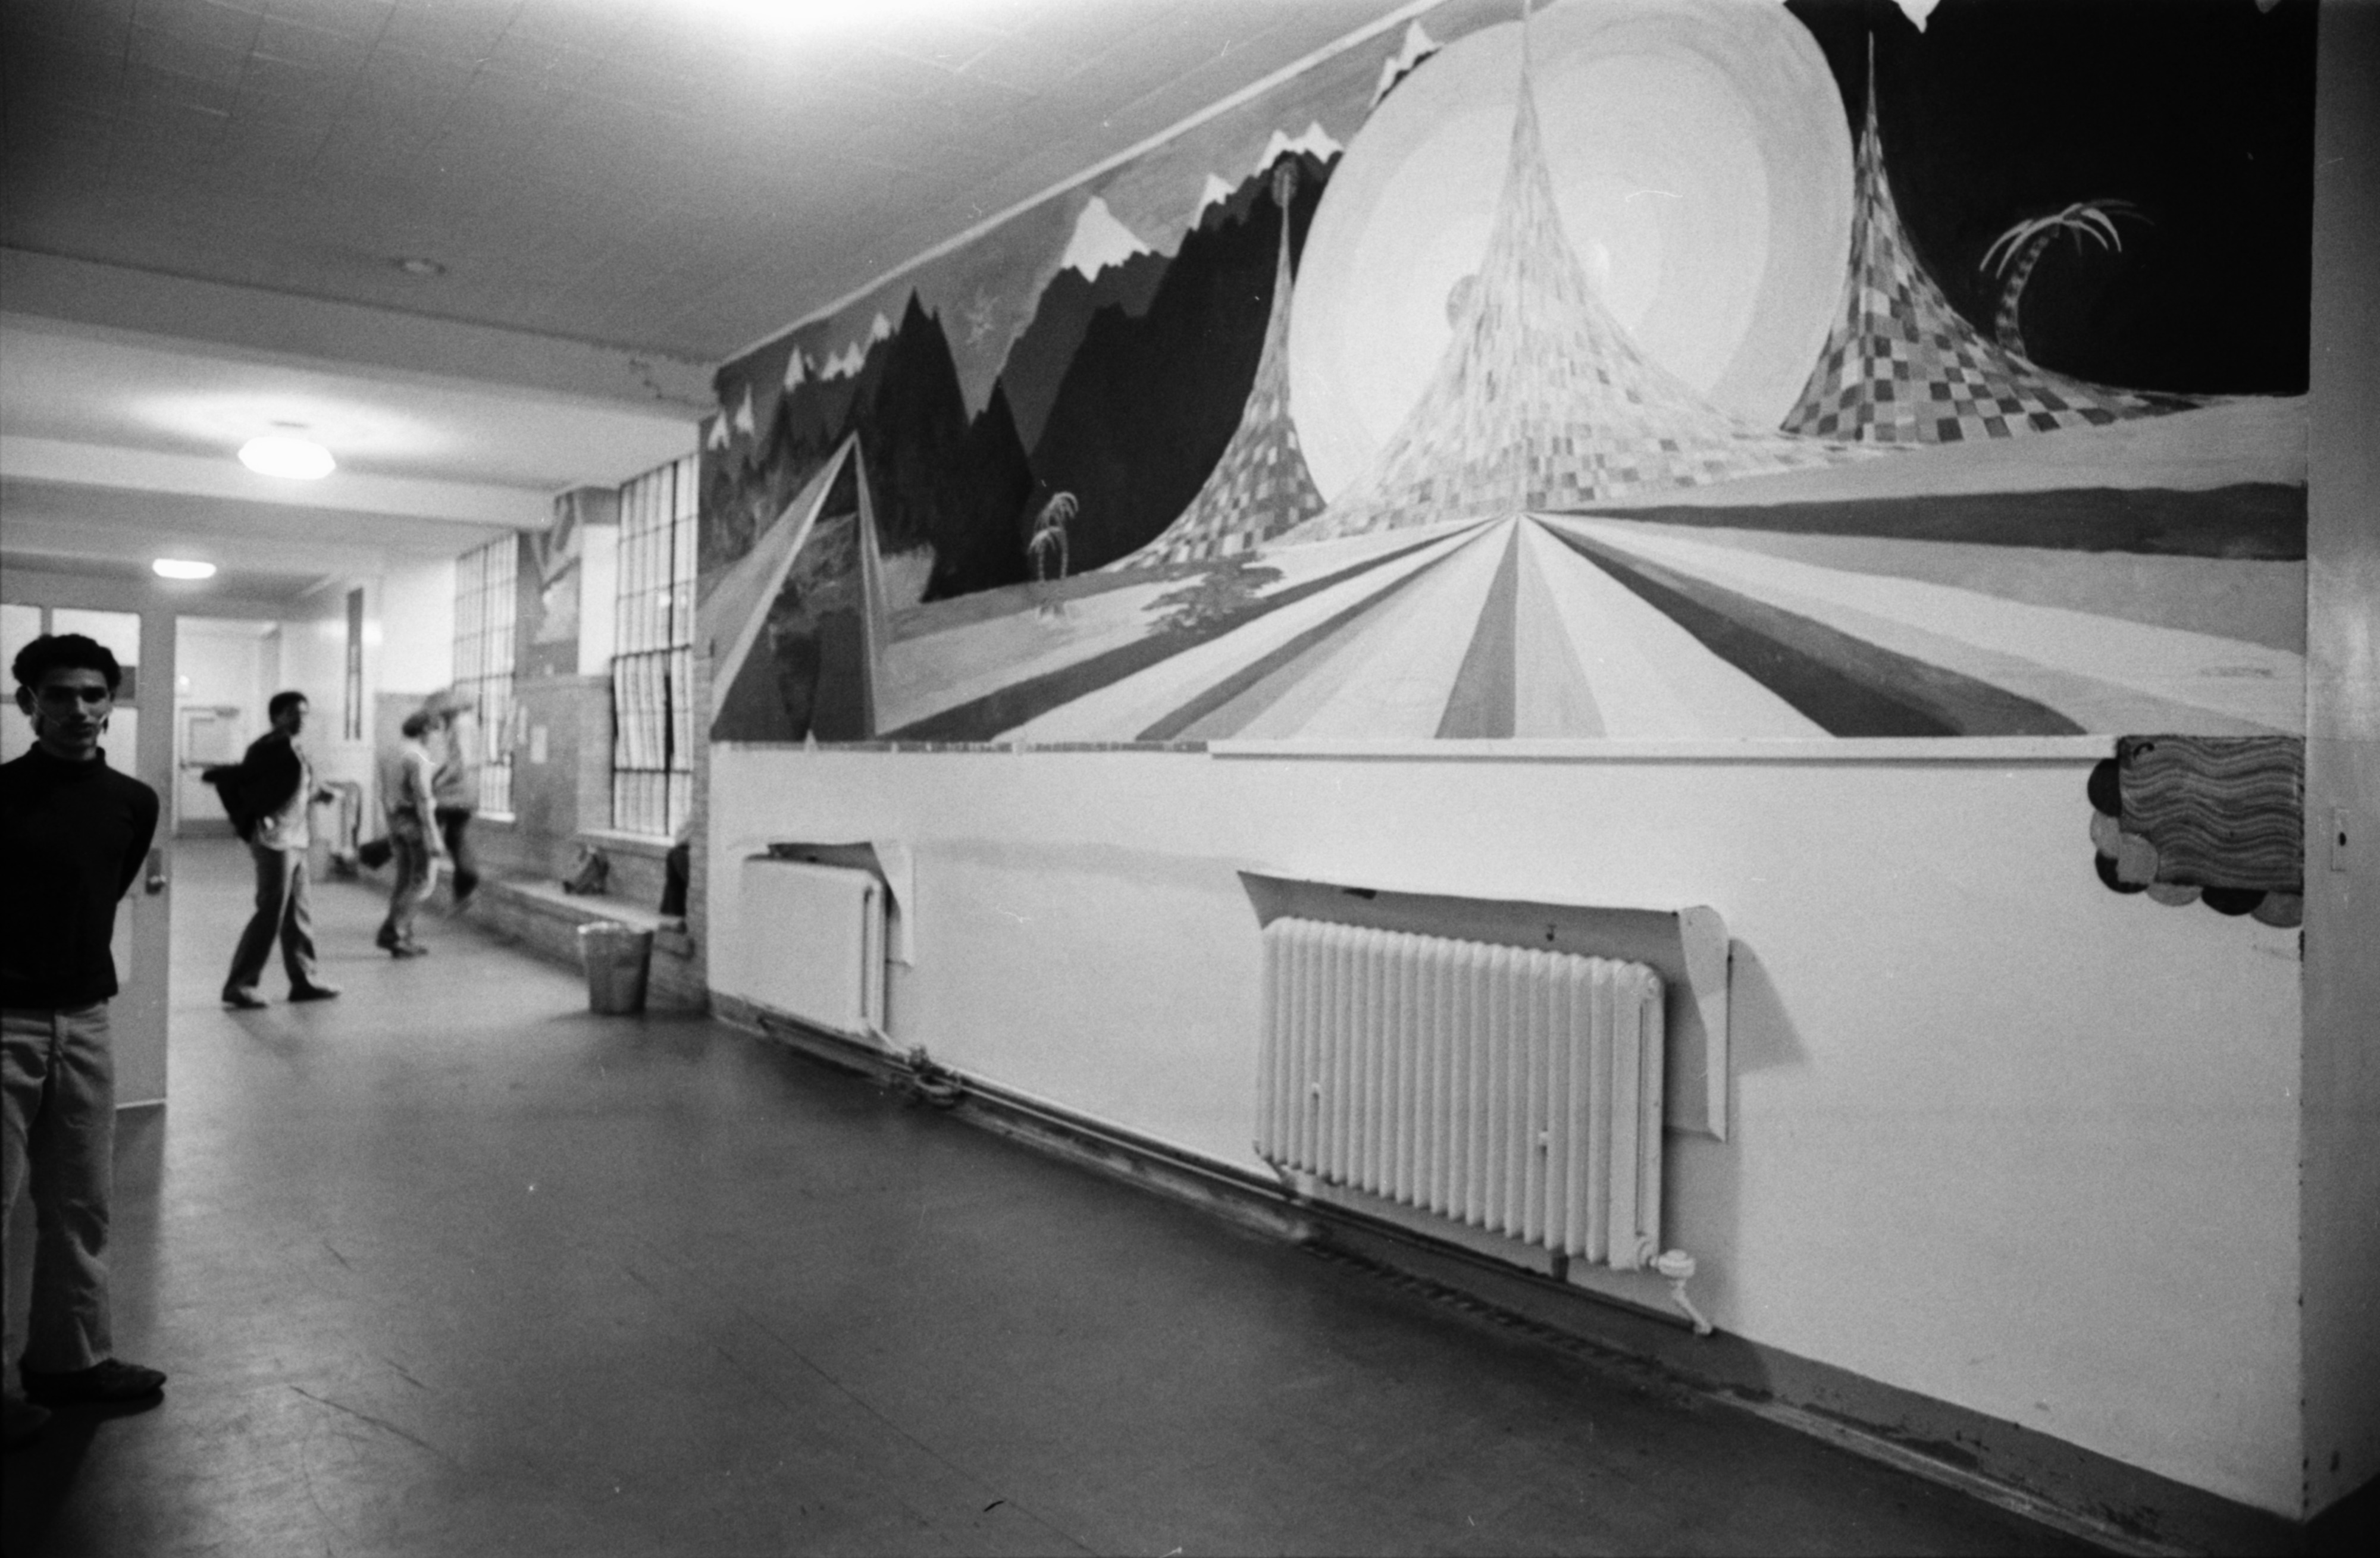 Hallway mural at Community High School students, 1978 image